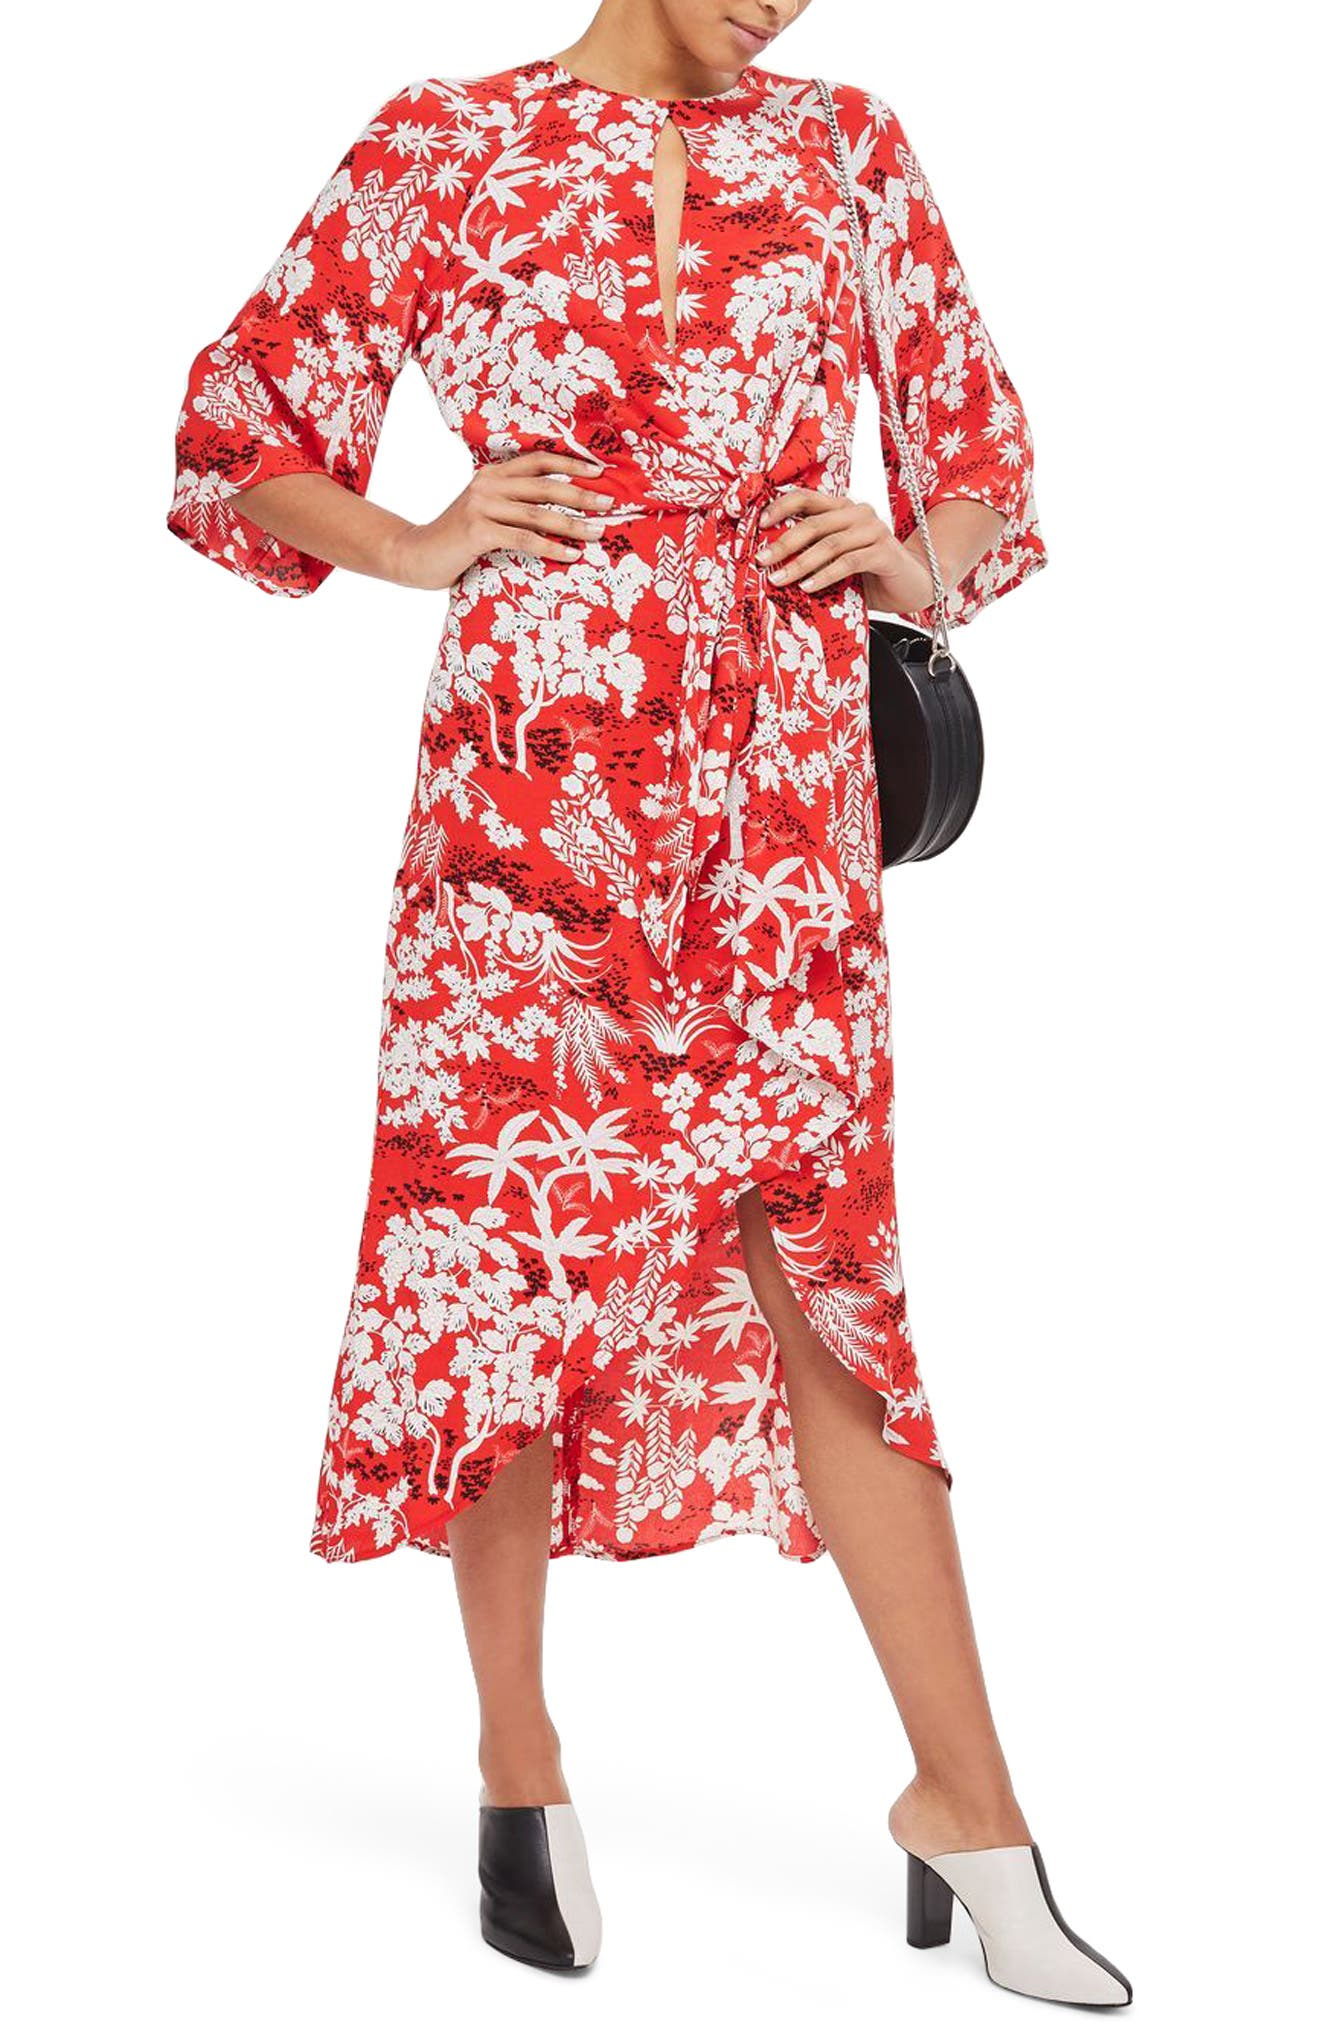 Knotted Midi Dress,                         Main,                         color, Red Multi